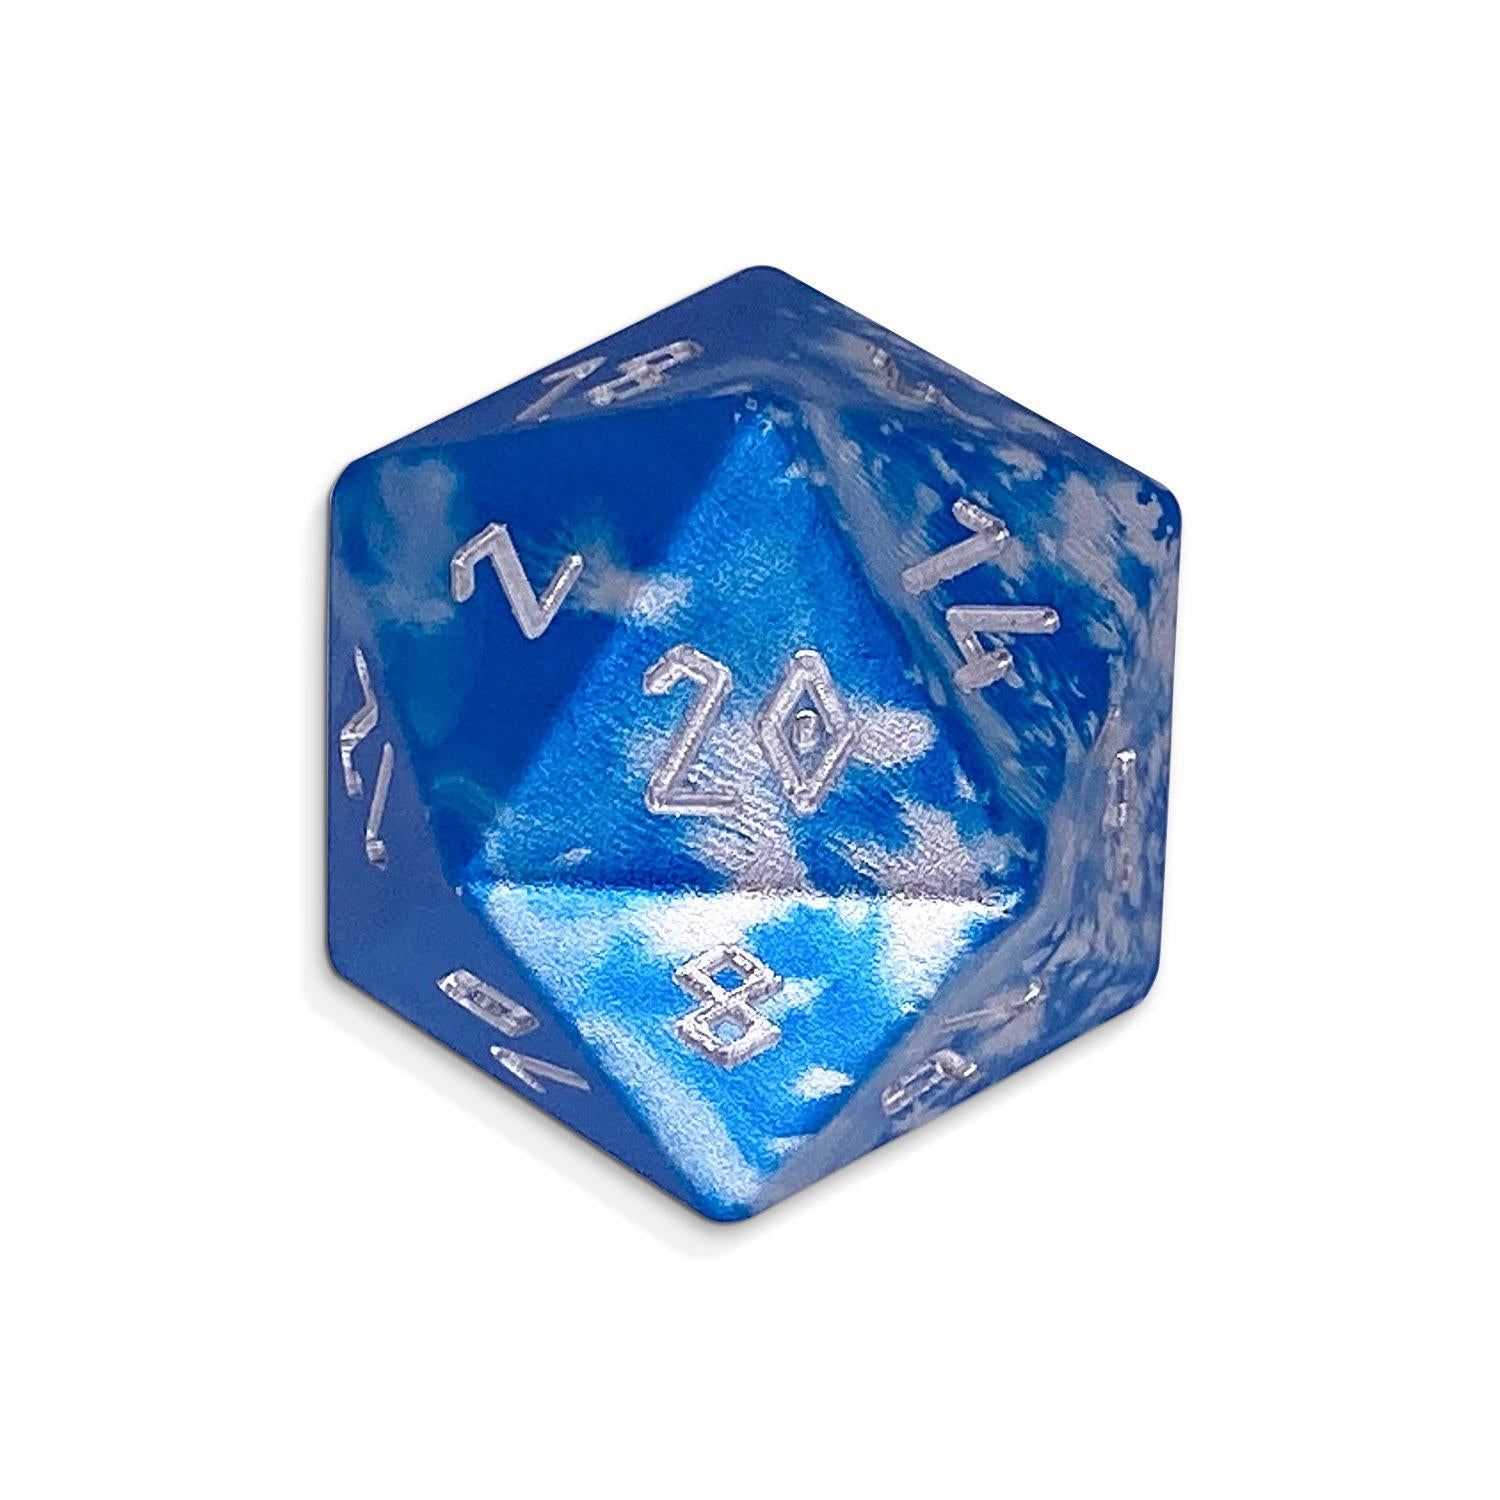 Single Wondrous Dice® D20 in Holy Smite! by Norse Foundry® 6063 Aircraft Grade Aluminum